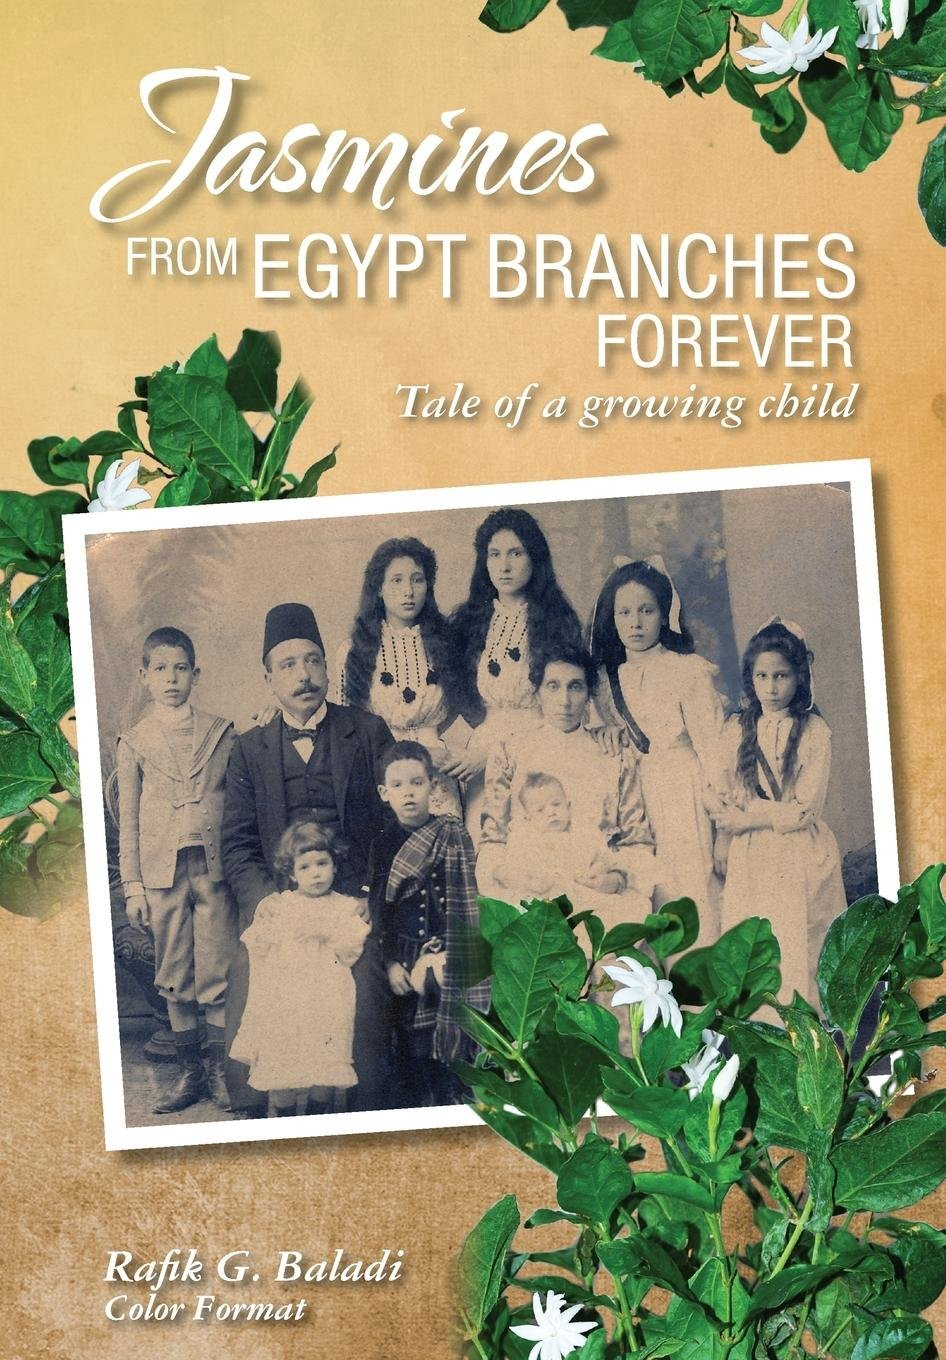 Jasmines from Egypt Branches Forever: Tale of a Growing Child (Color Interior) by Rafik Baladi